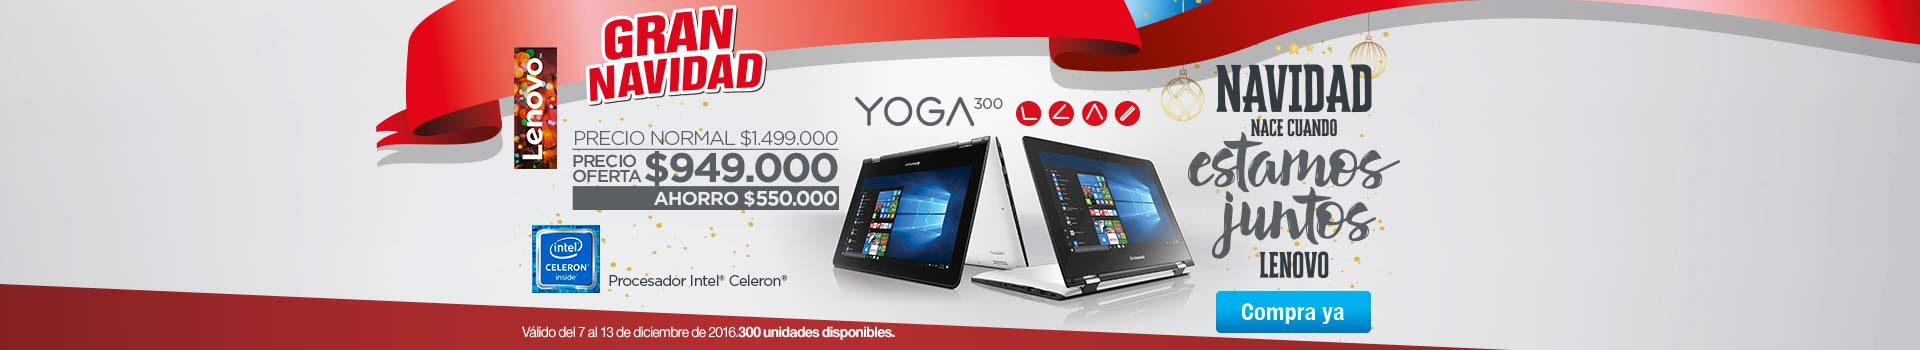 LENOVO - Categoria PC y Tablets - diciembre 9 - Convertible 2 en 1 LENOVO YOGA 300 Celeron 11